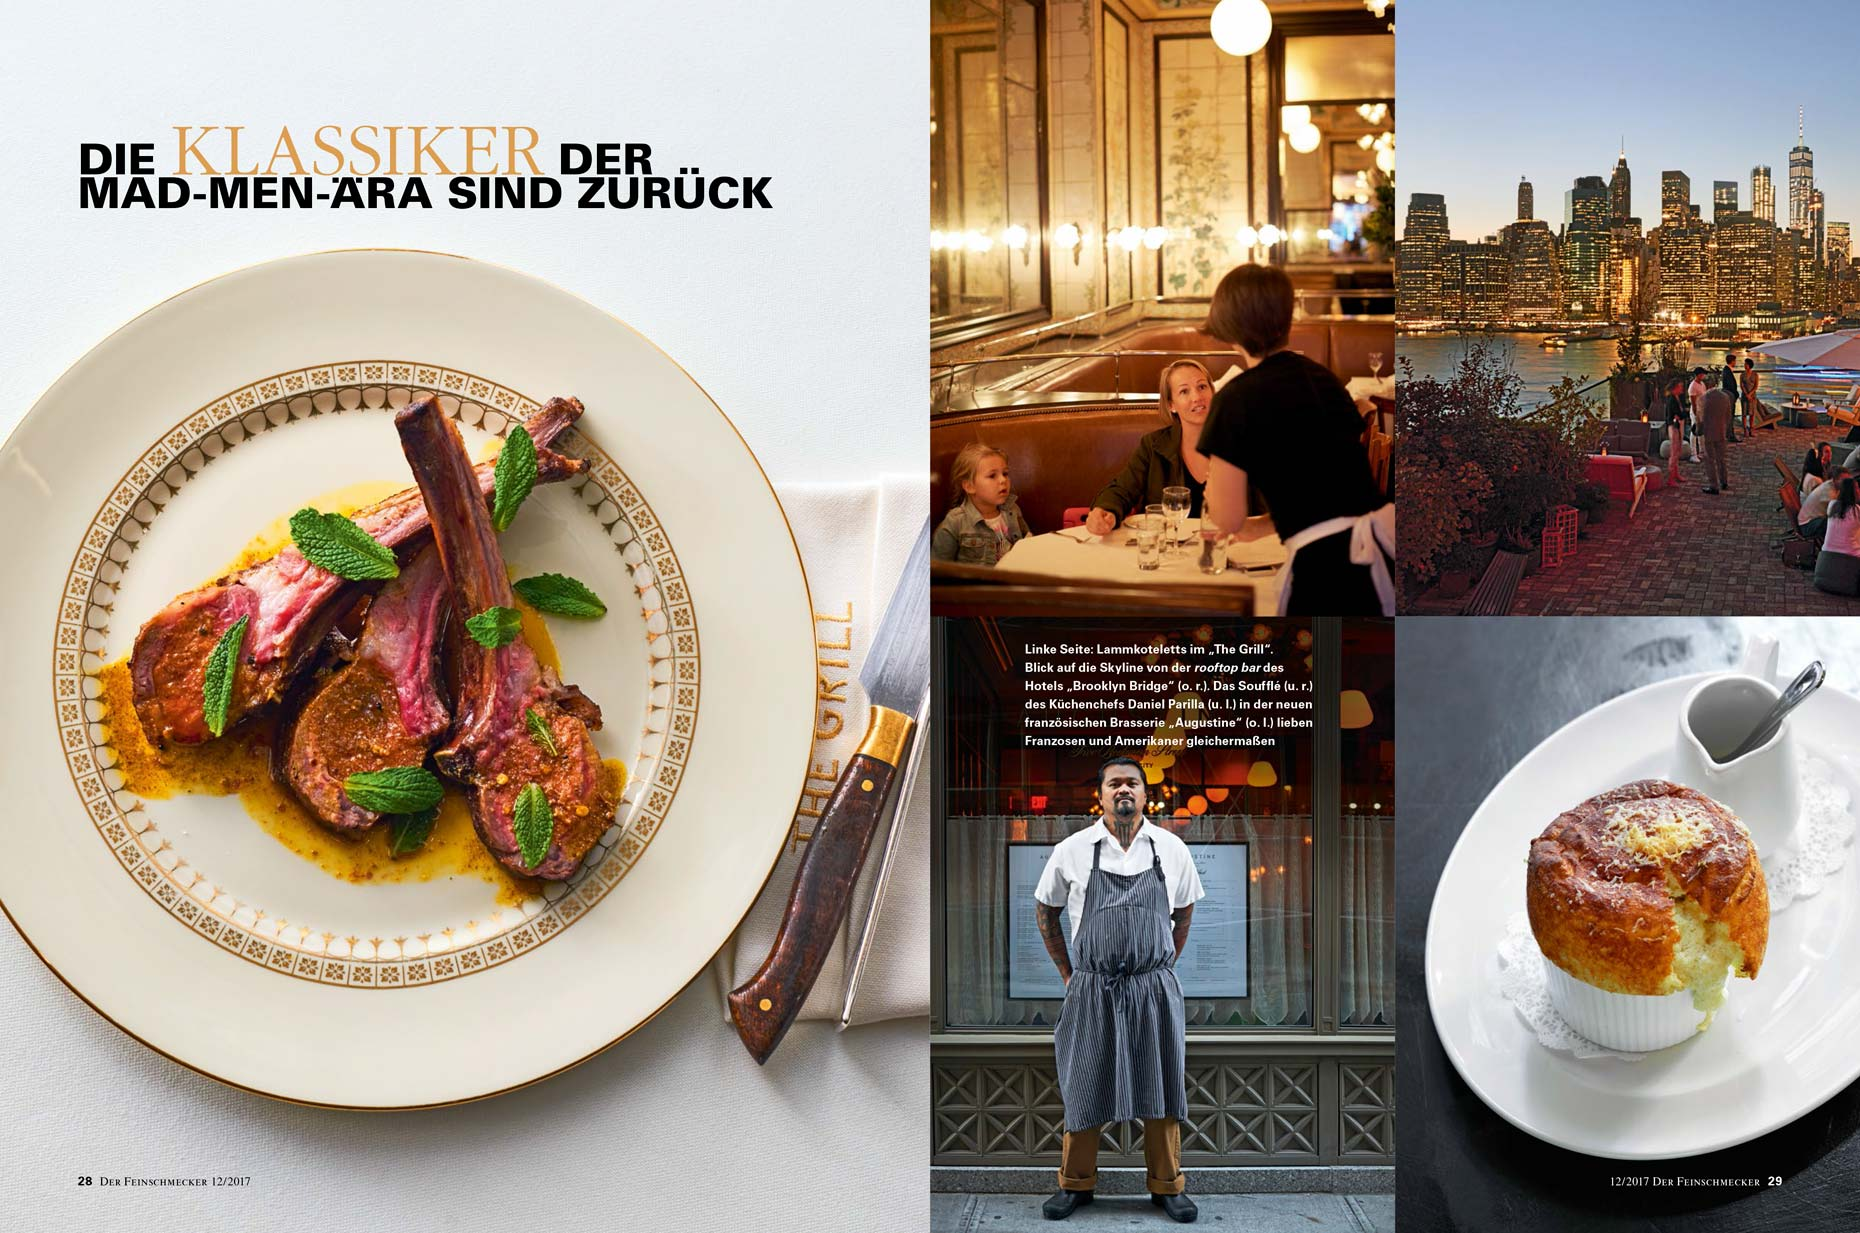 gourmet_germany_feinschmecker_newyork_food_adrianmueller_02